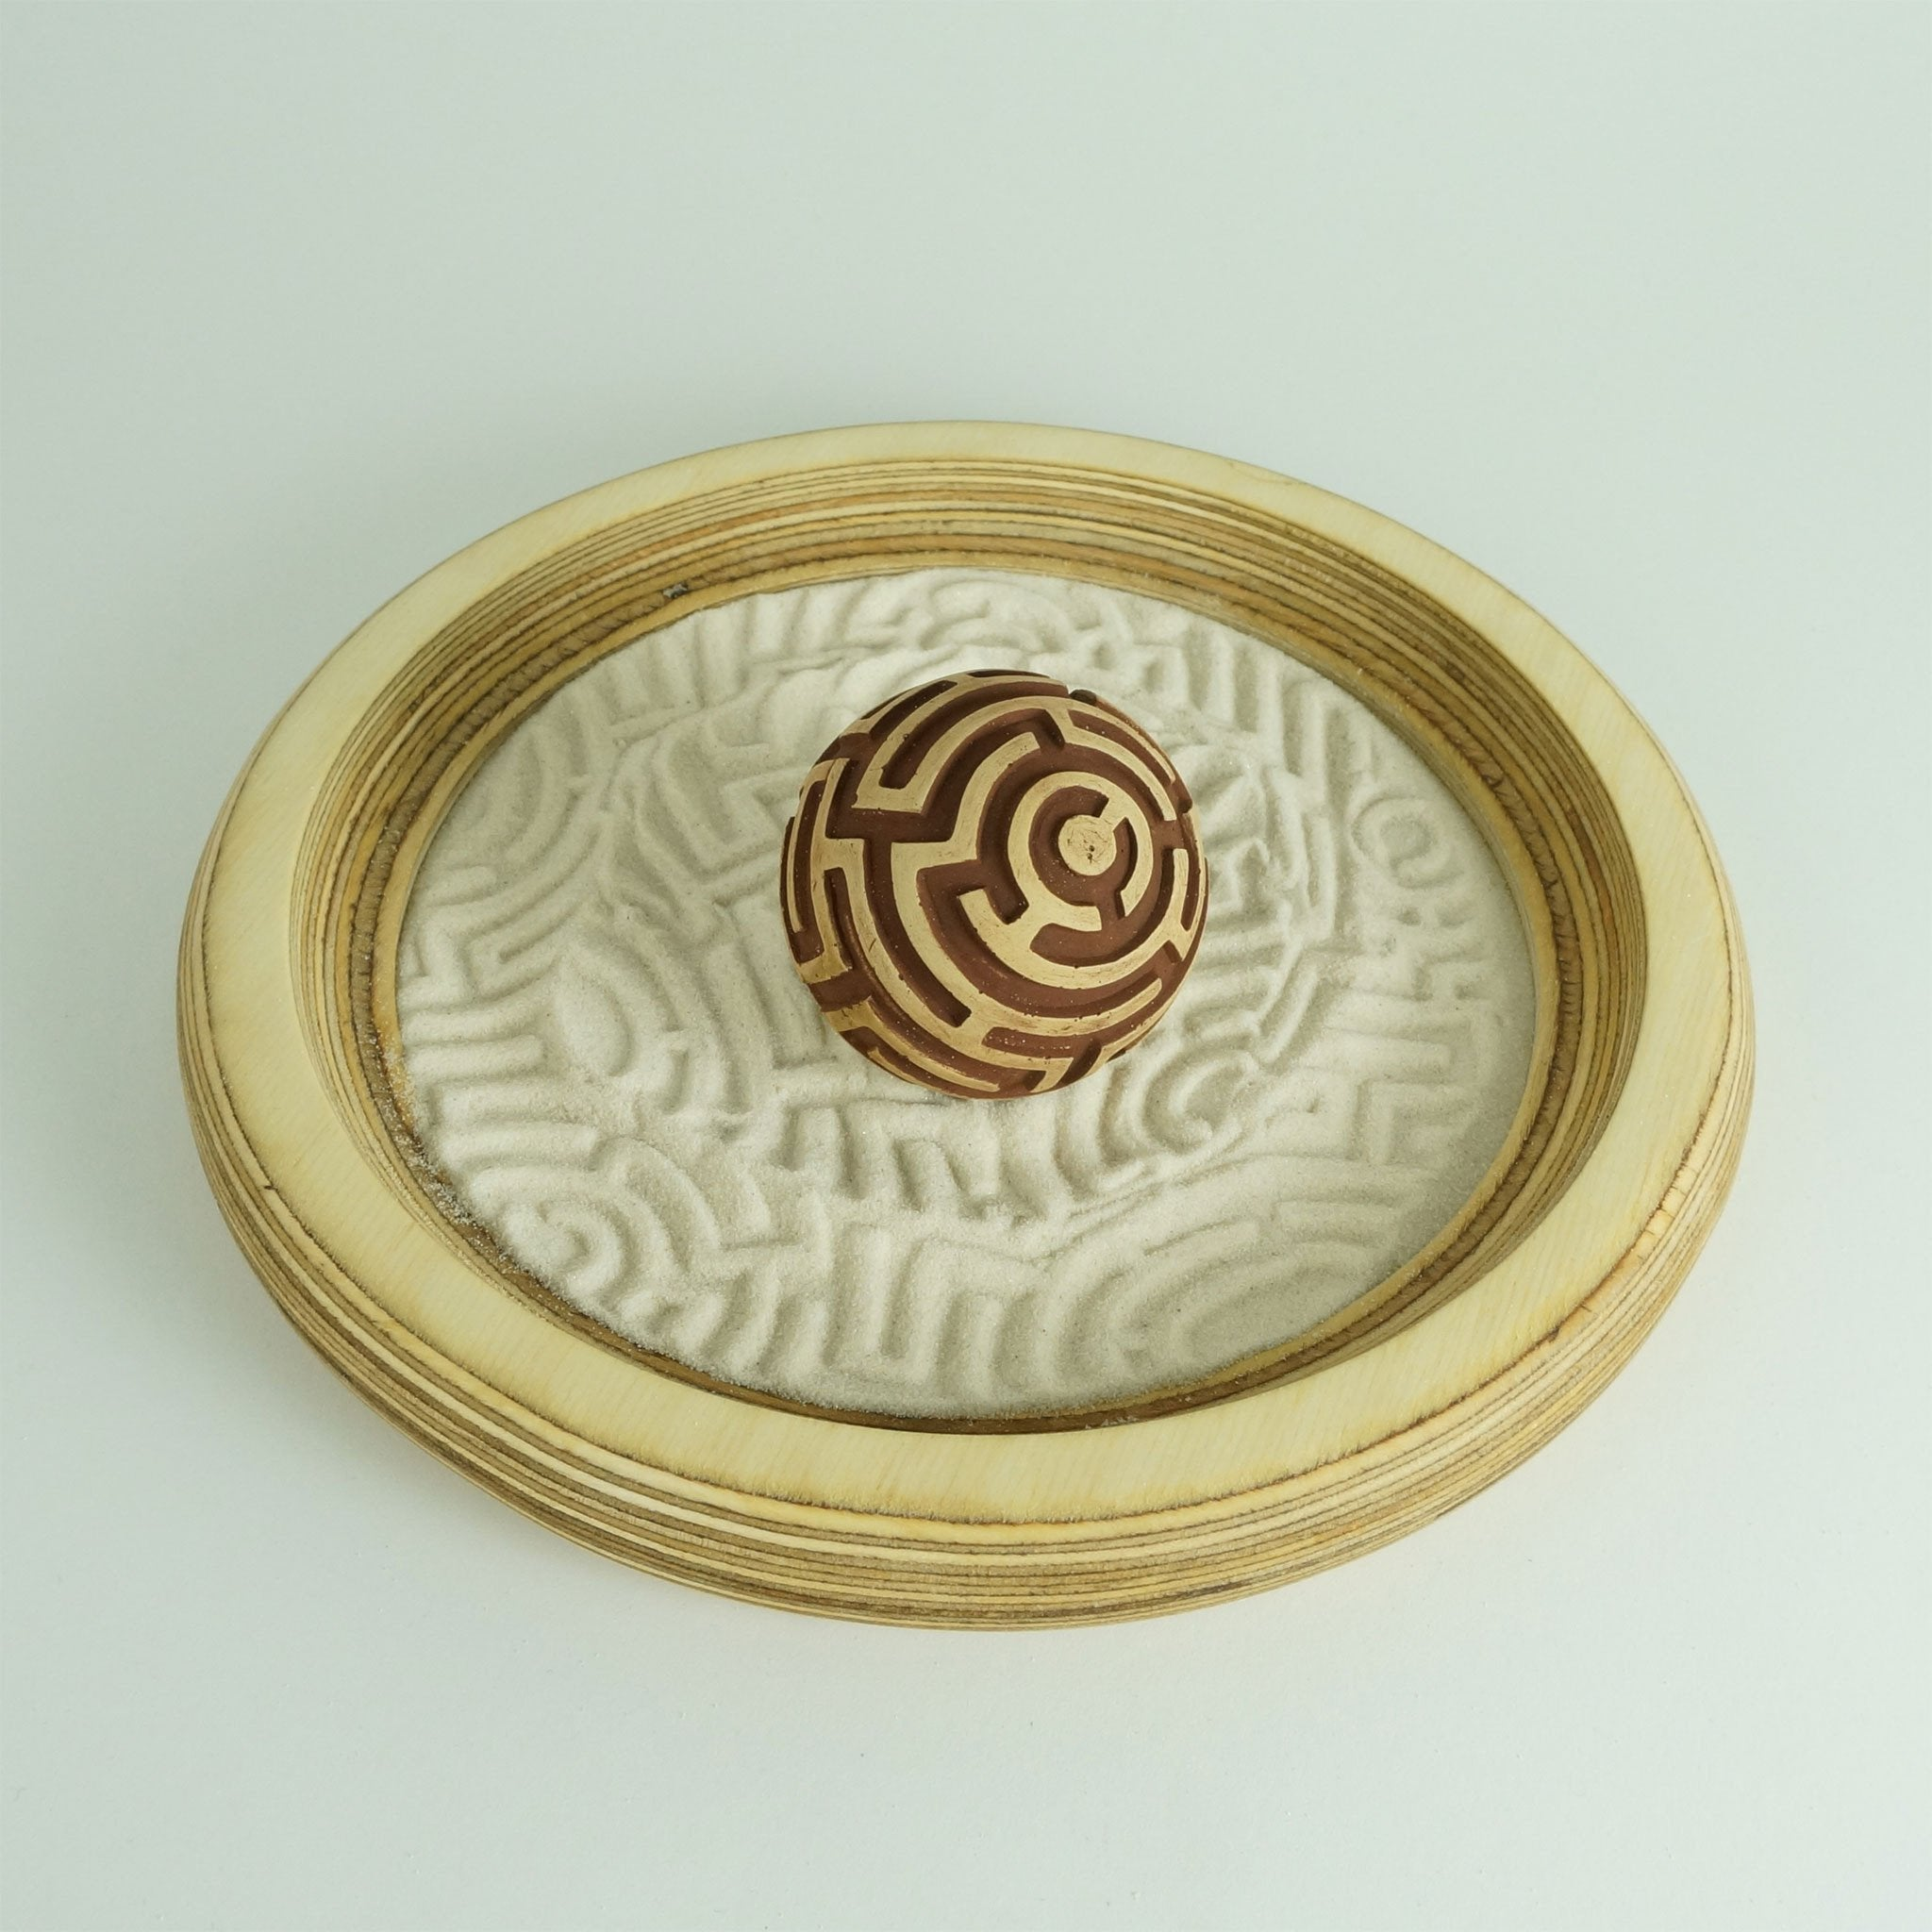 A Mini Zen Garden For Home Or Office. Therapeutic Sand Play For All. Comes